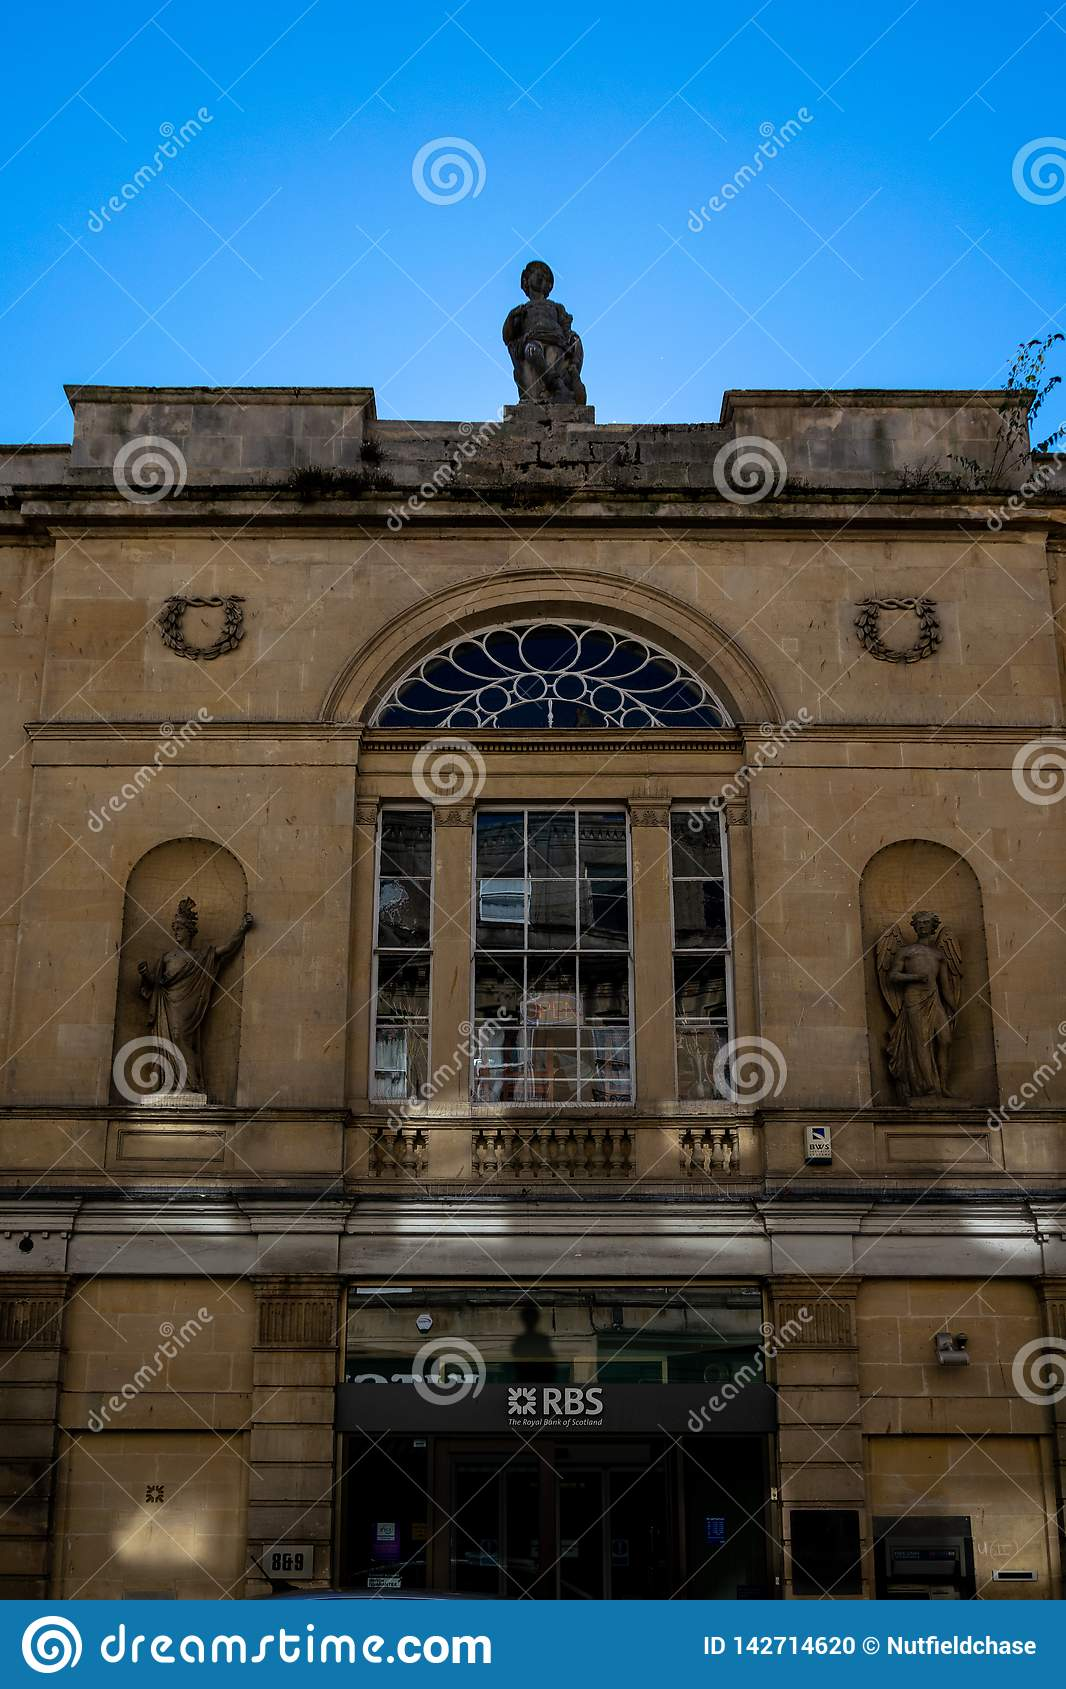 The Facade Of The RBS Bank At 8-9 Quiet Street, Bath In A